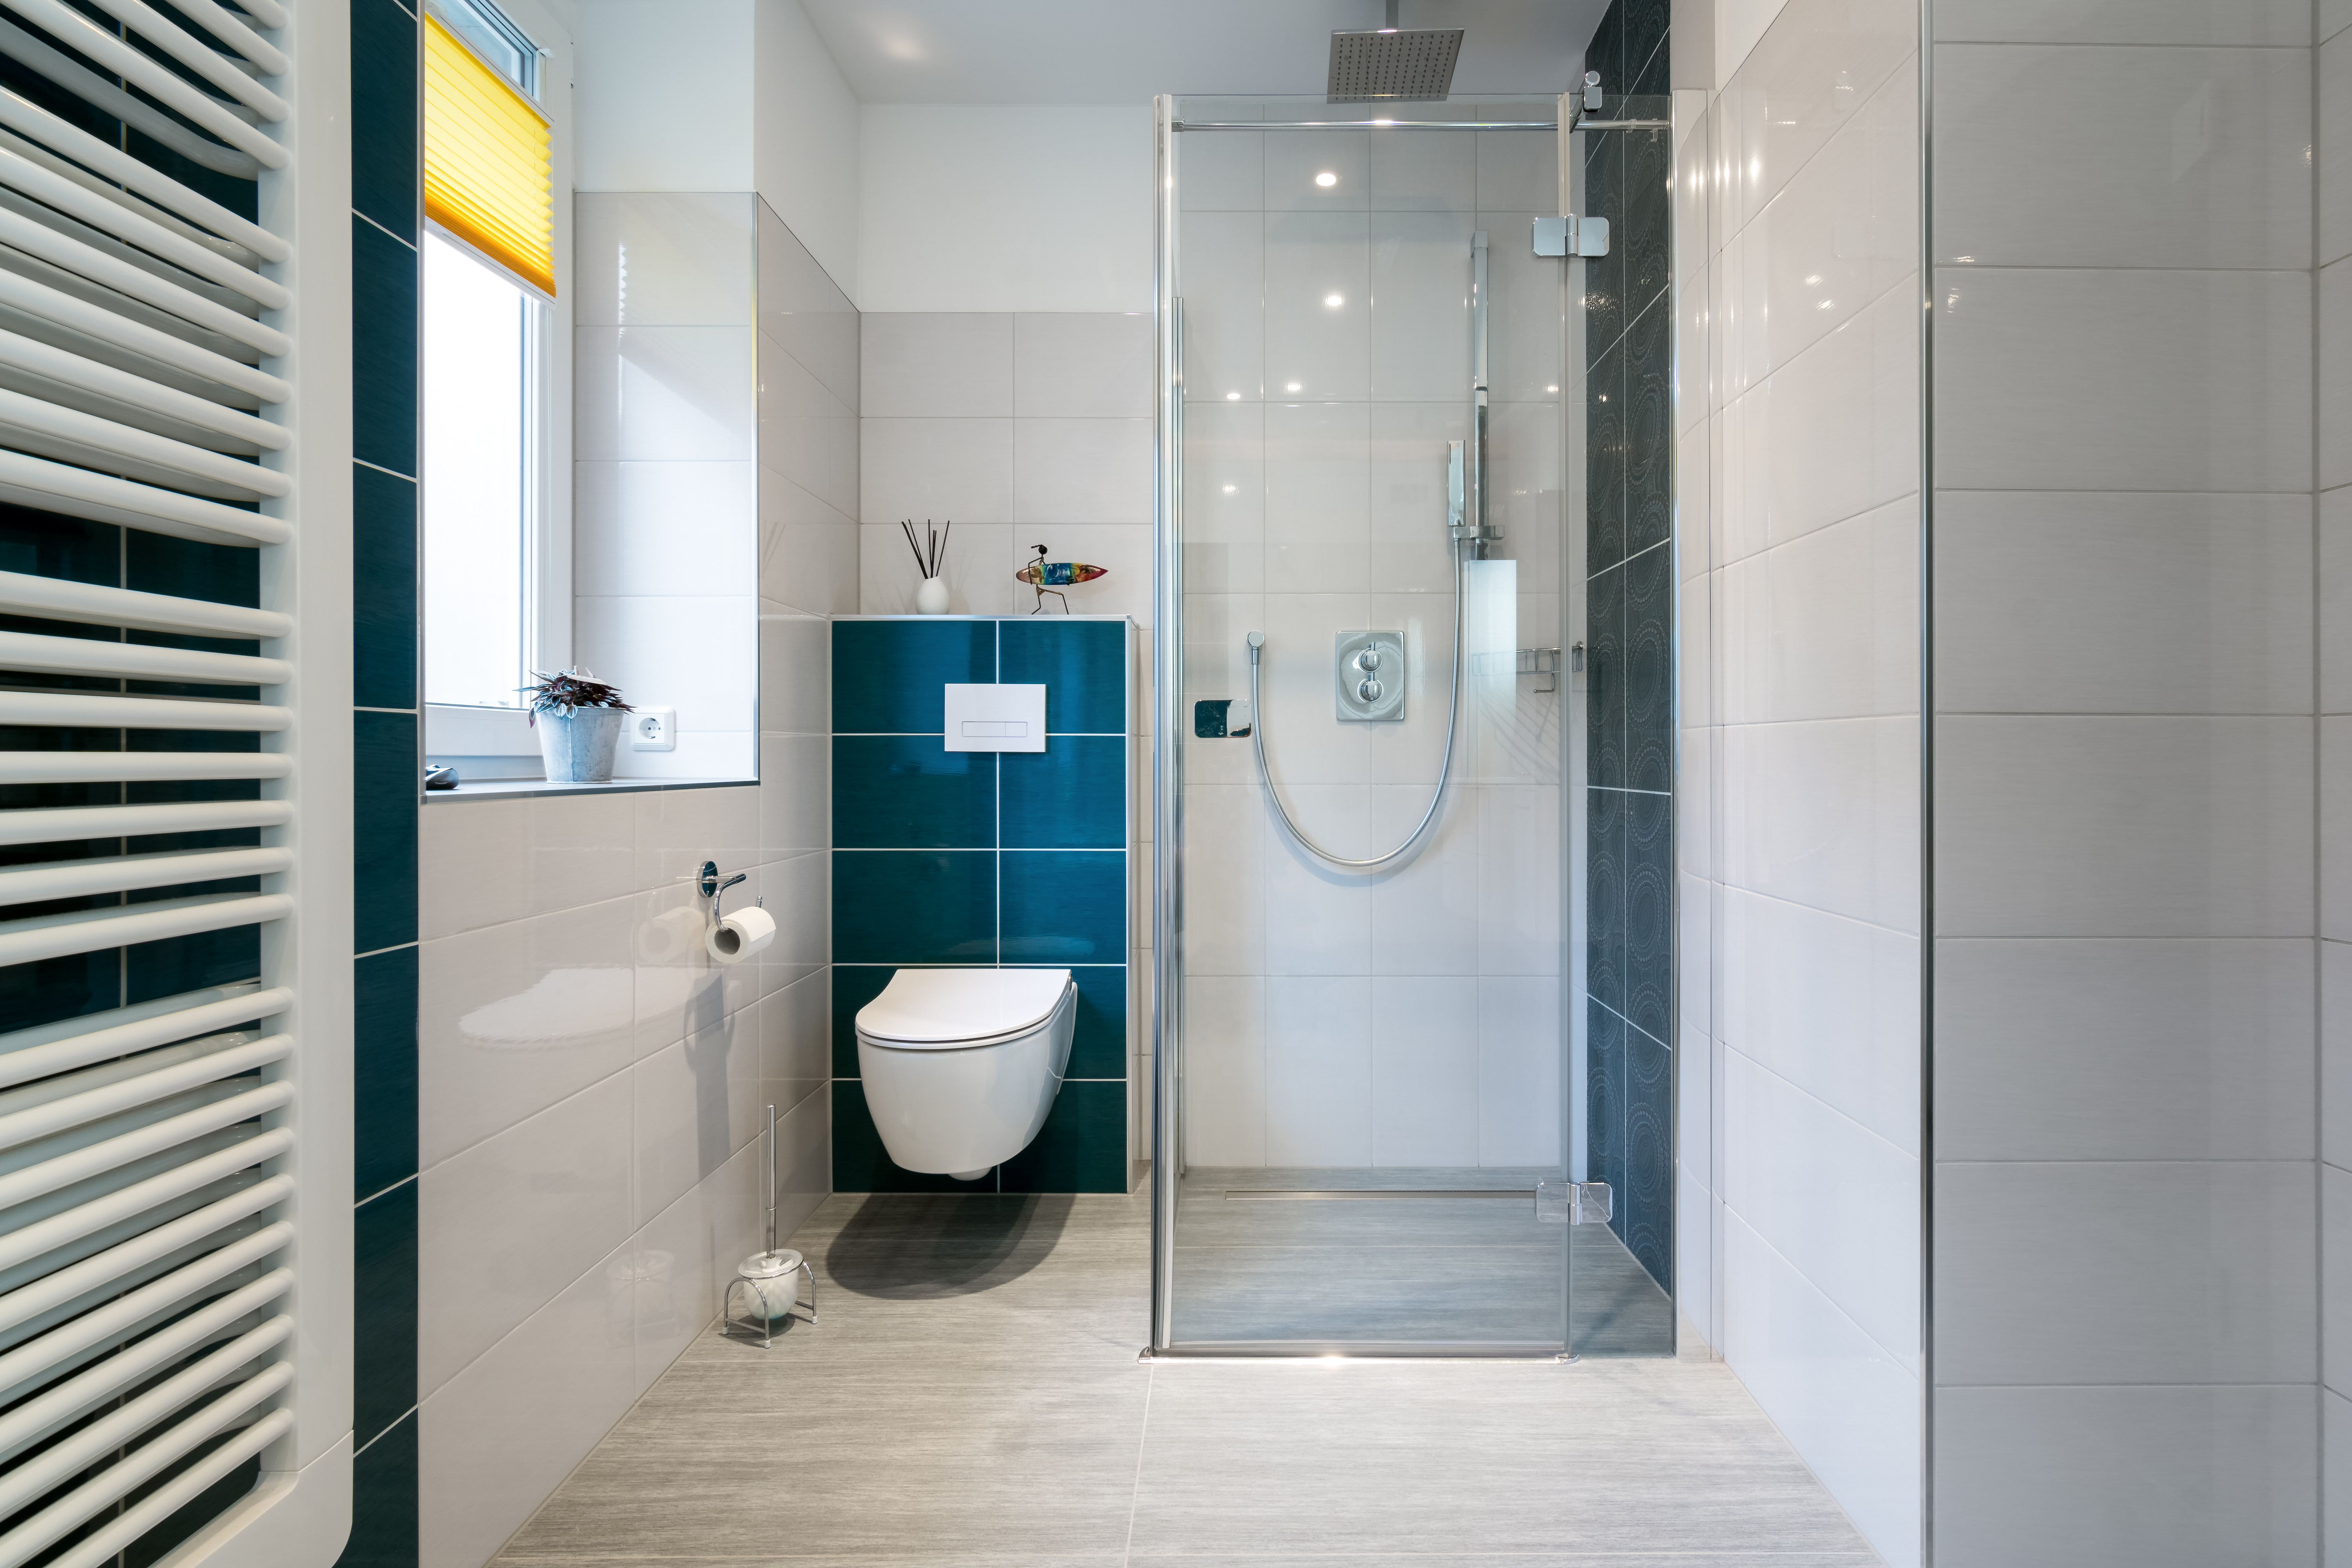 How To Fix A Shower Door That Falls Off The Tracks Home